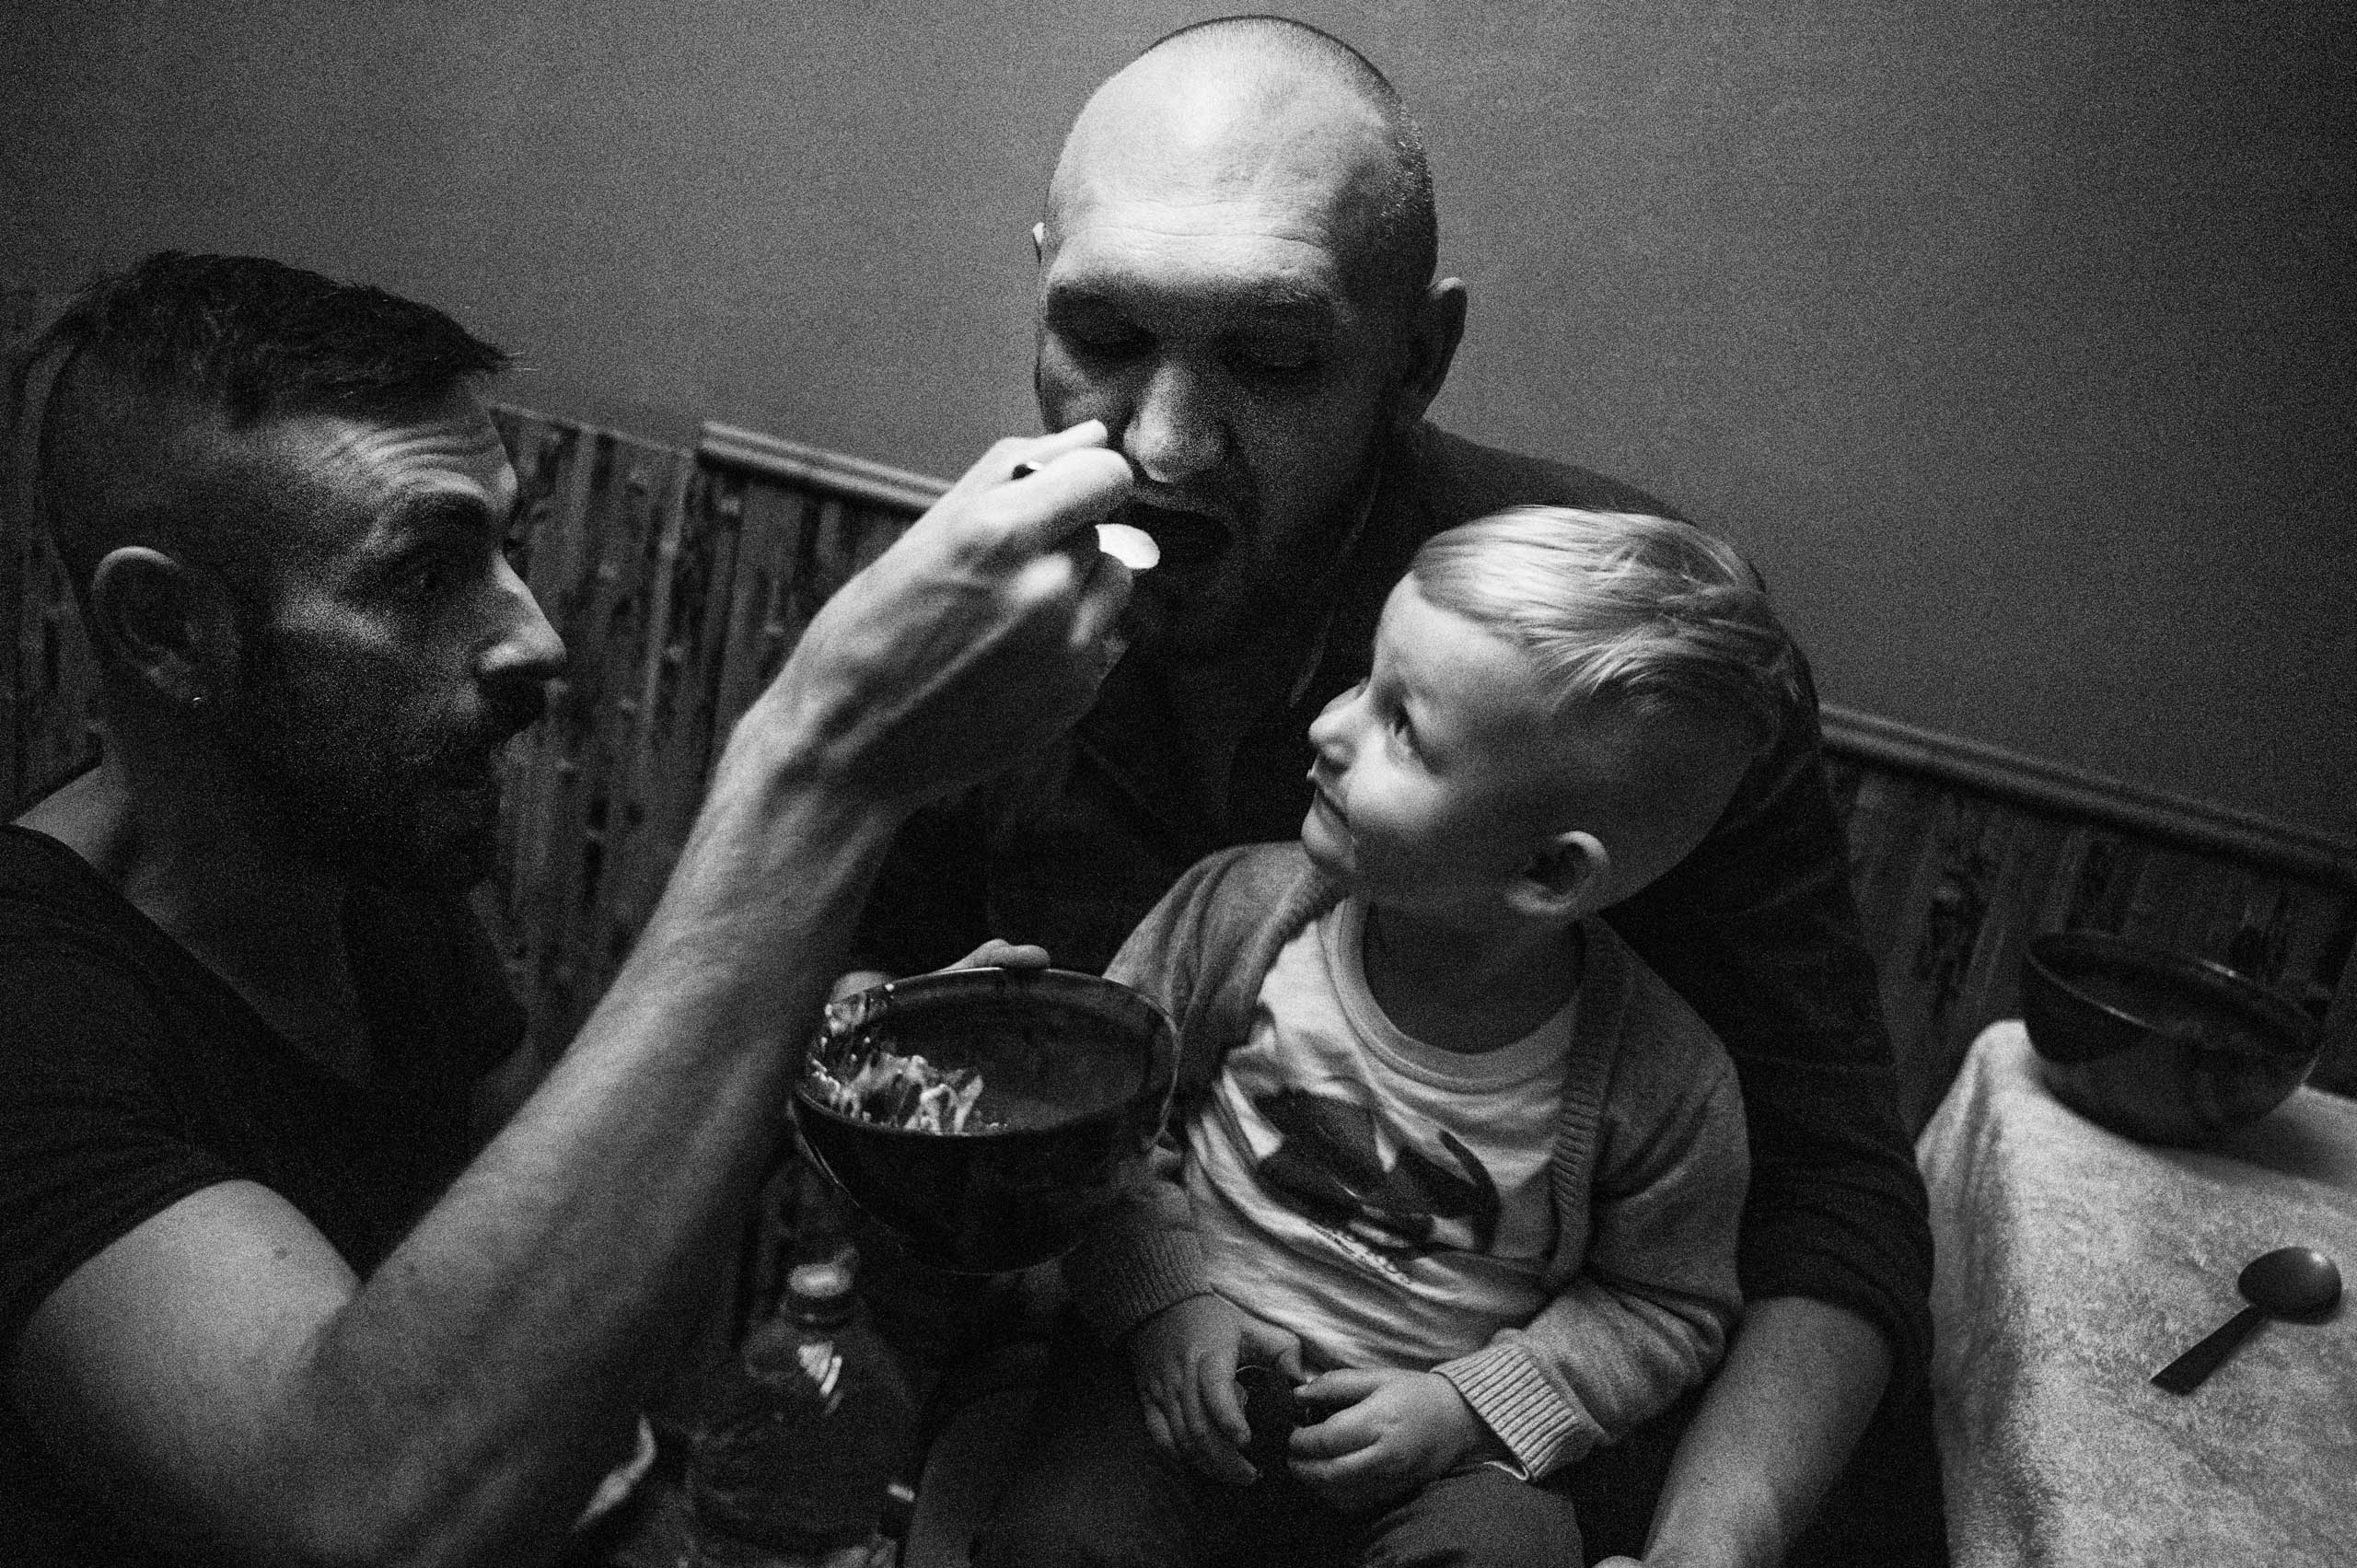 Bogdan is feeding Yegor, trying to convince Timur to eat his dinner.